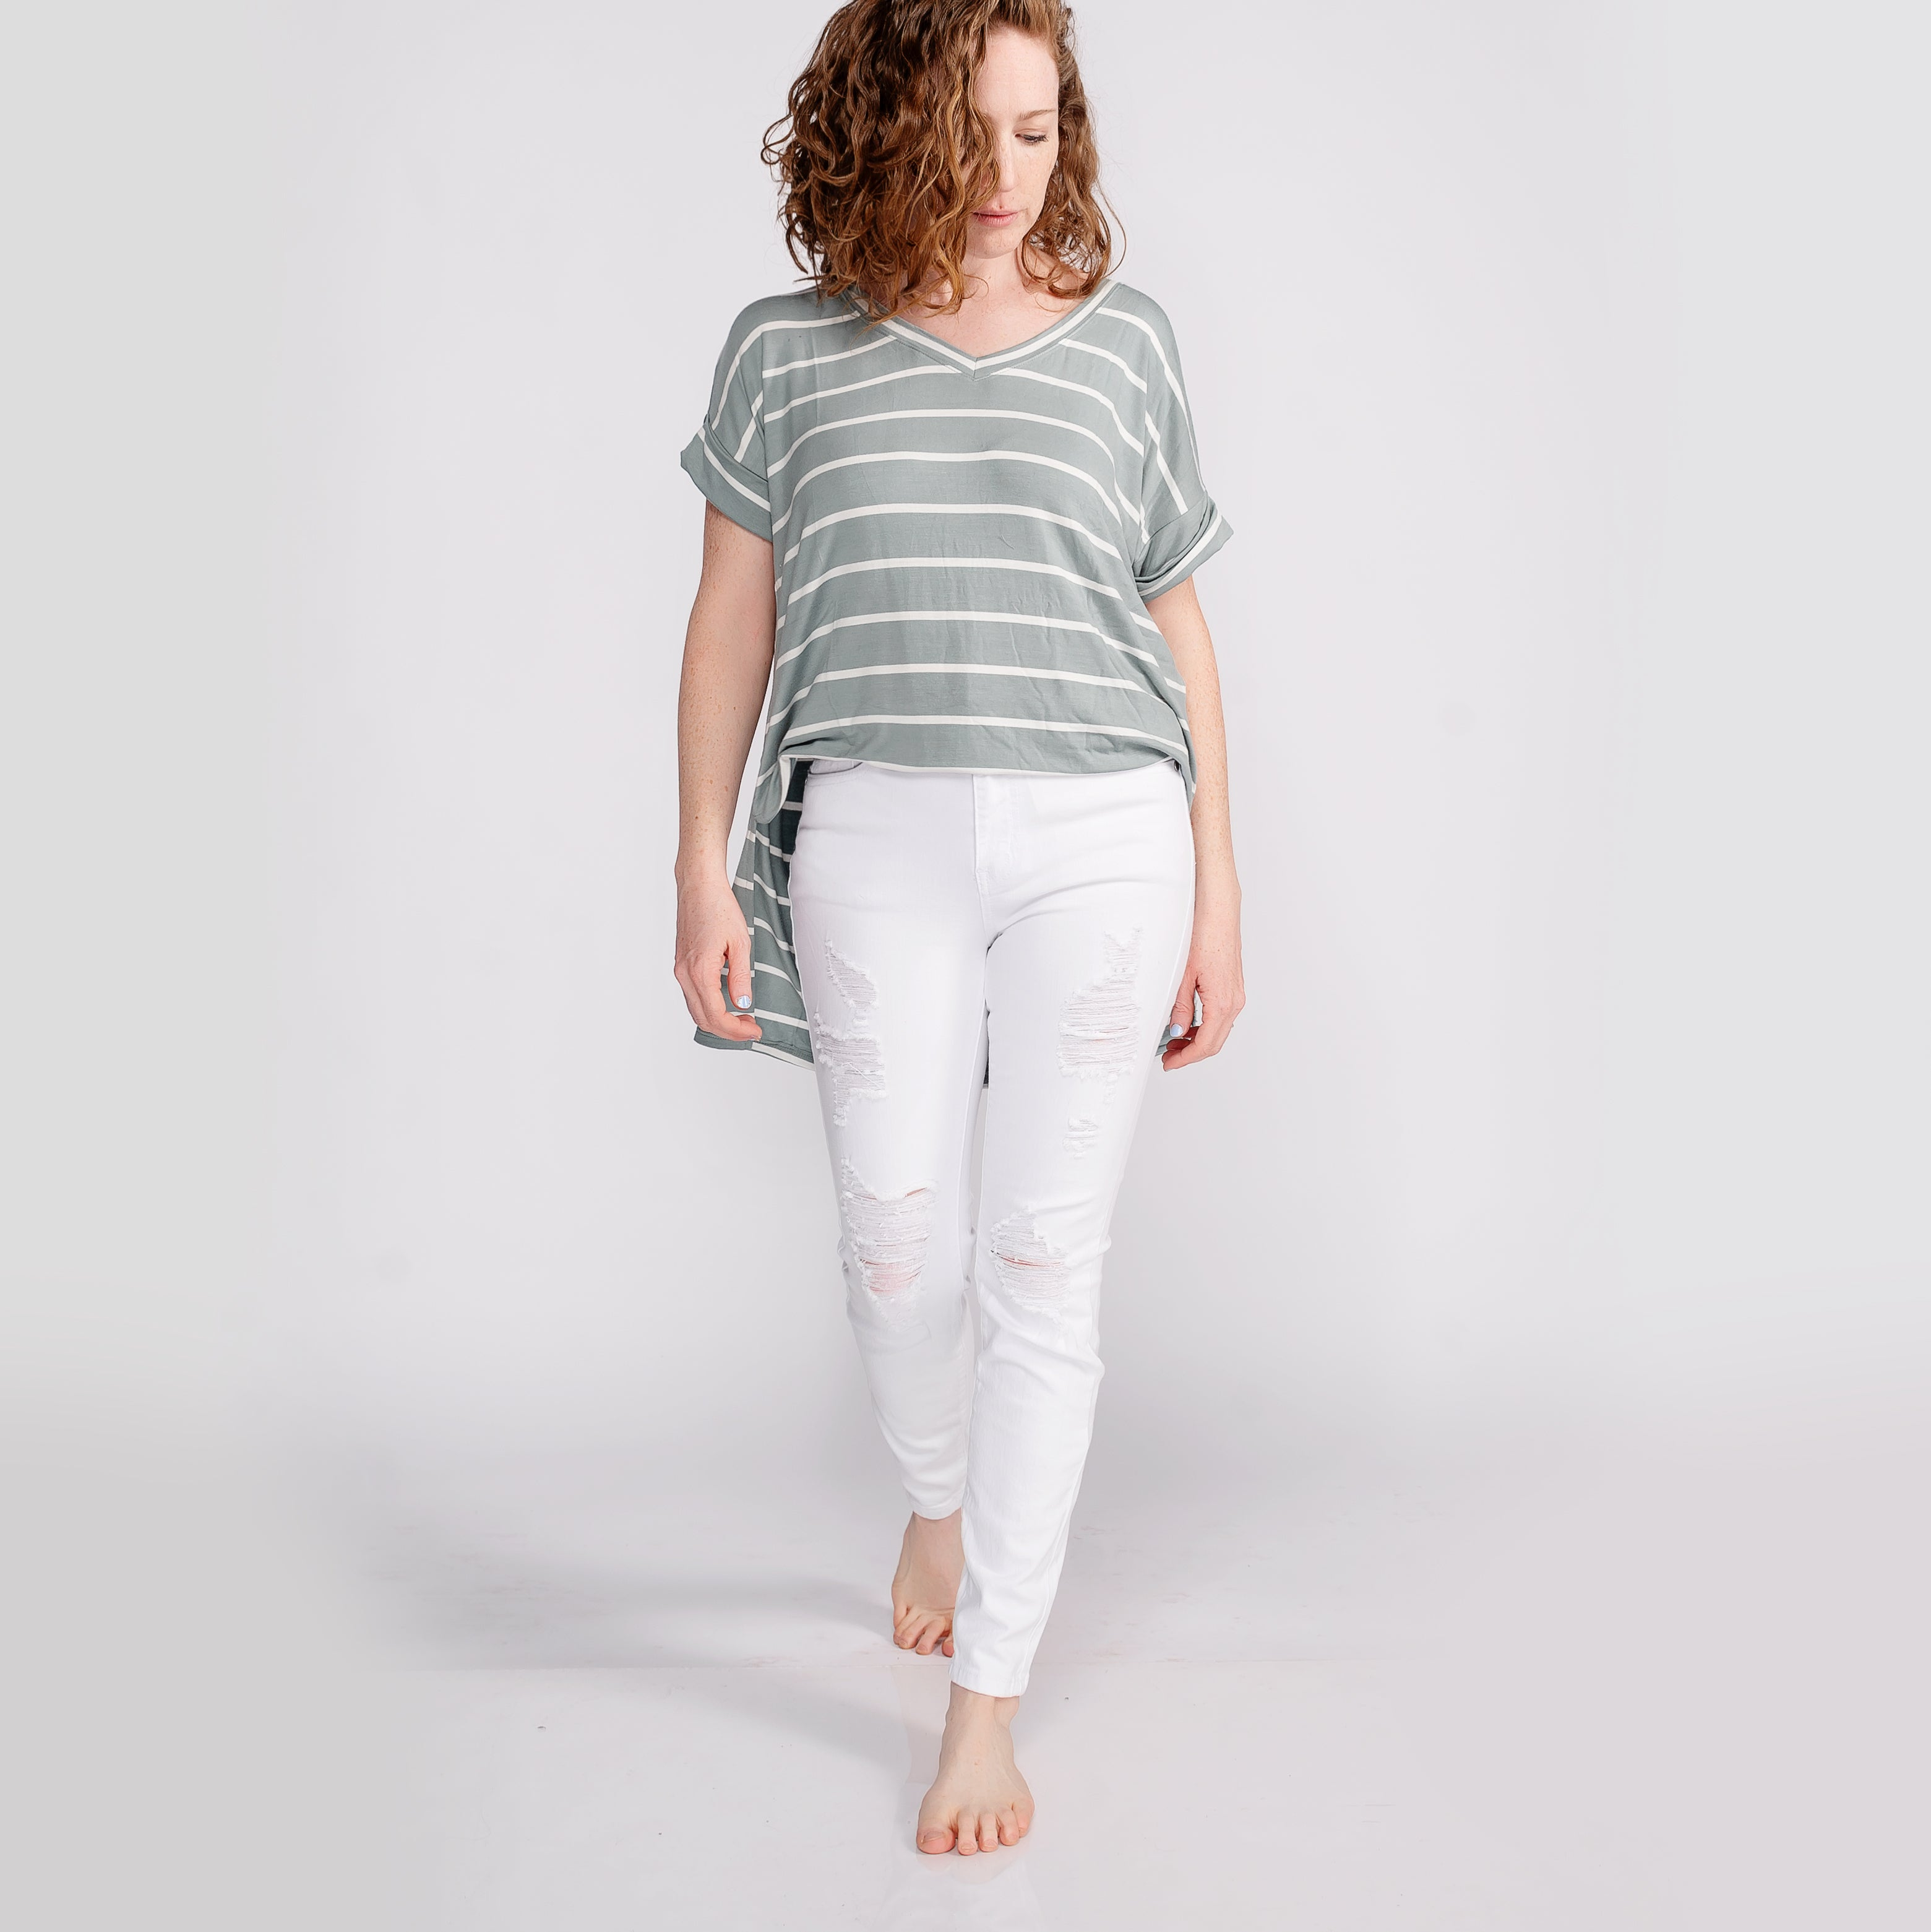 Judy Blue White Destroyed Skinny Jeans *Final Sale*